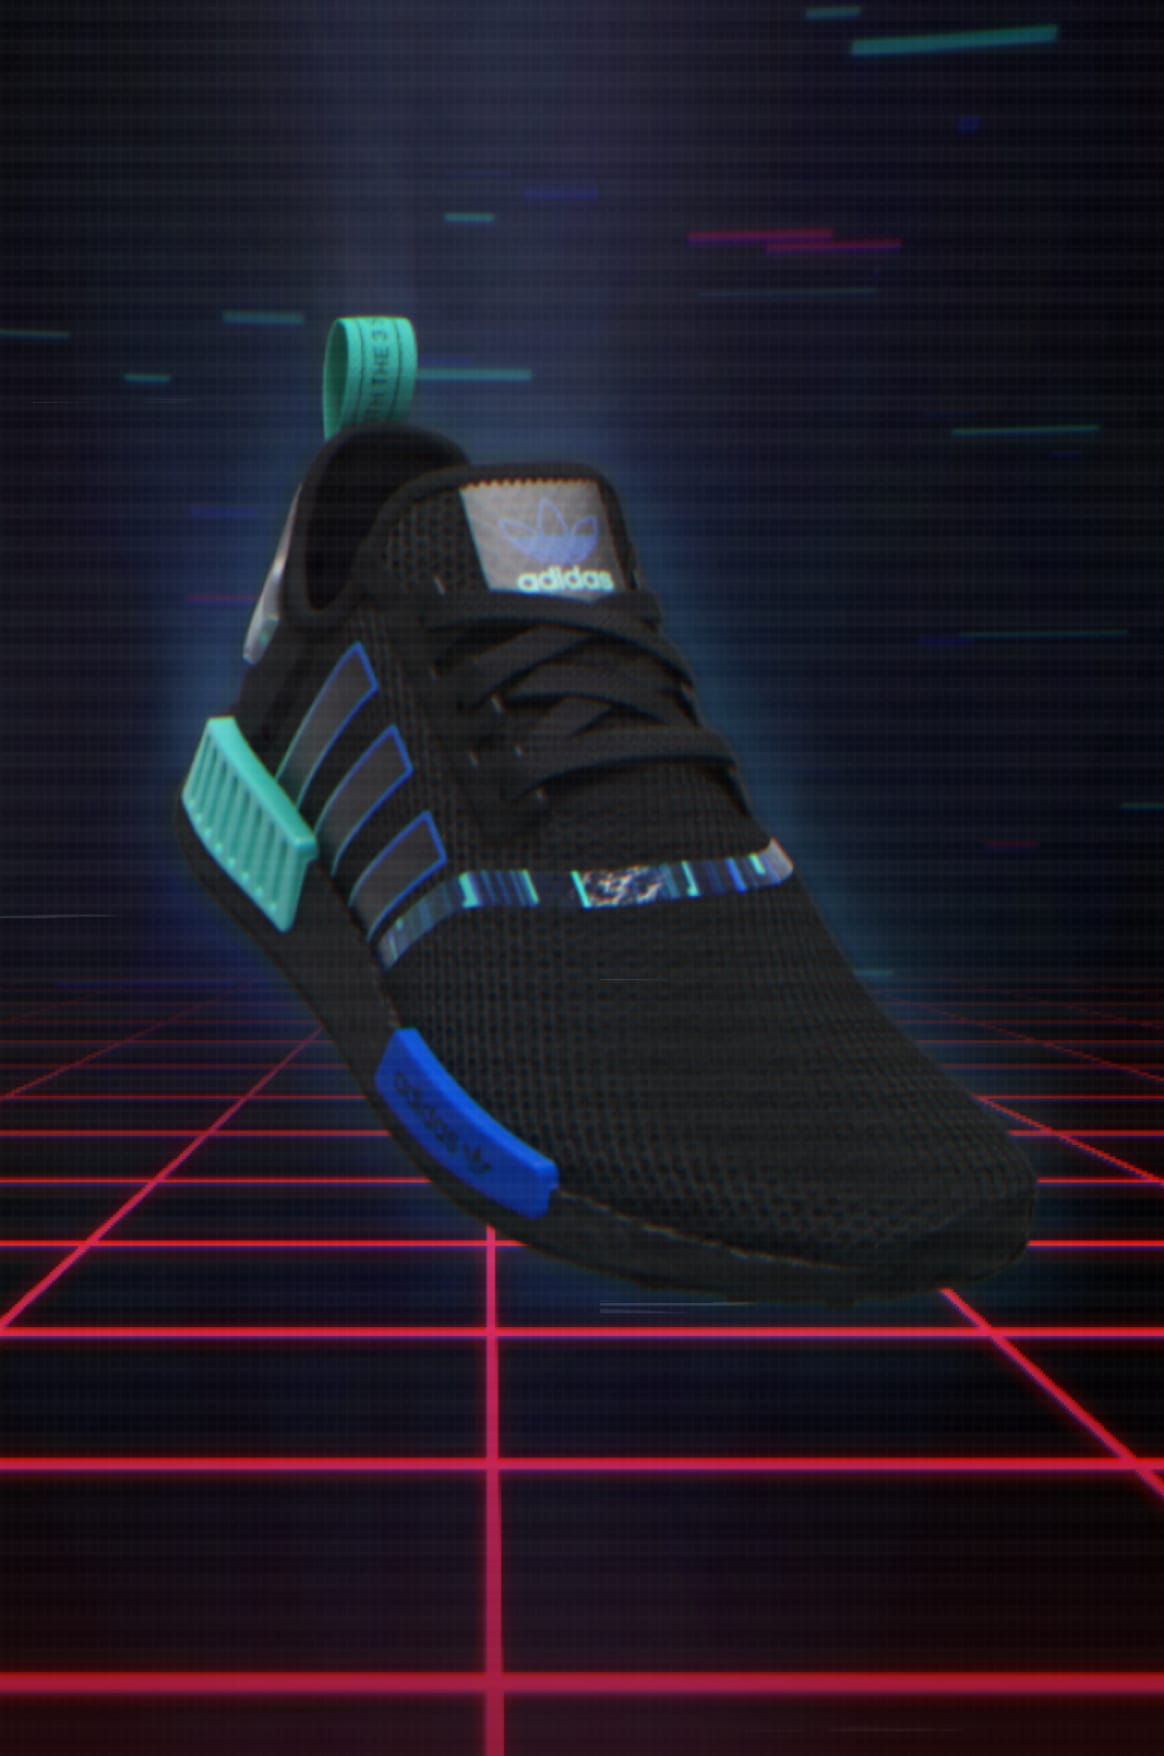 adidas NMD_R1 in video-game setting.